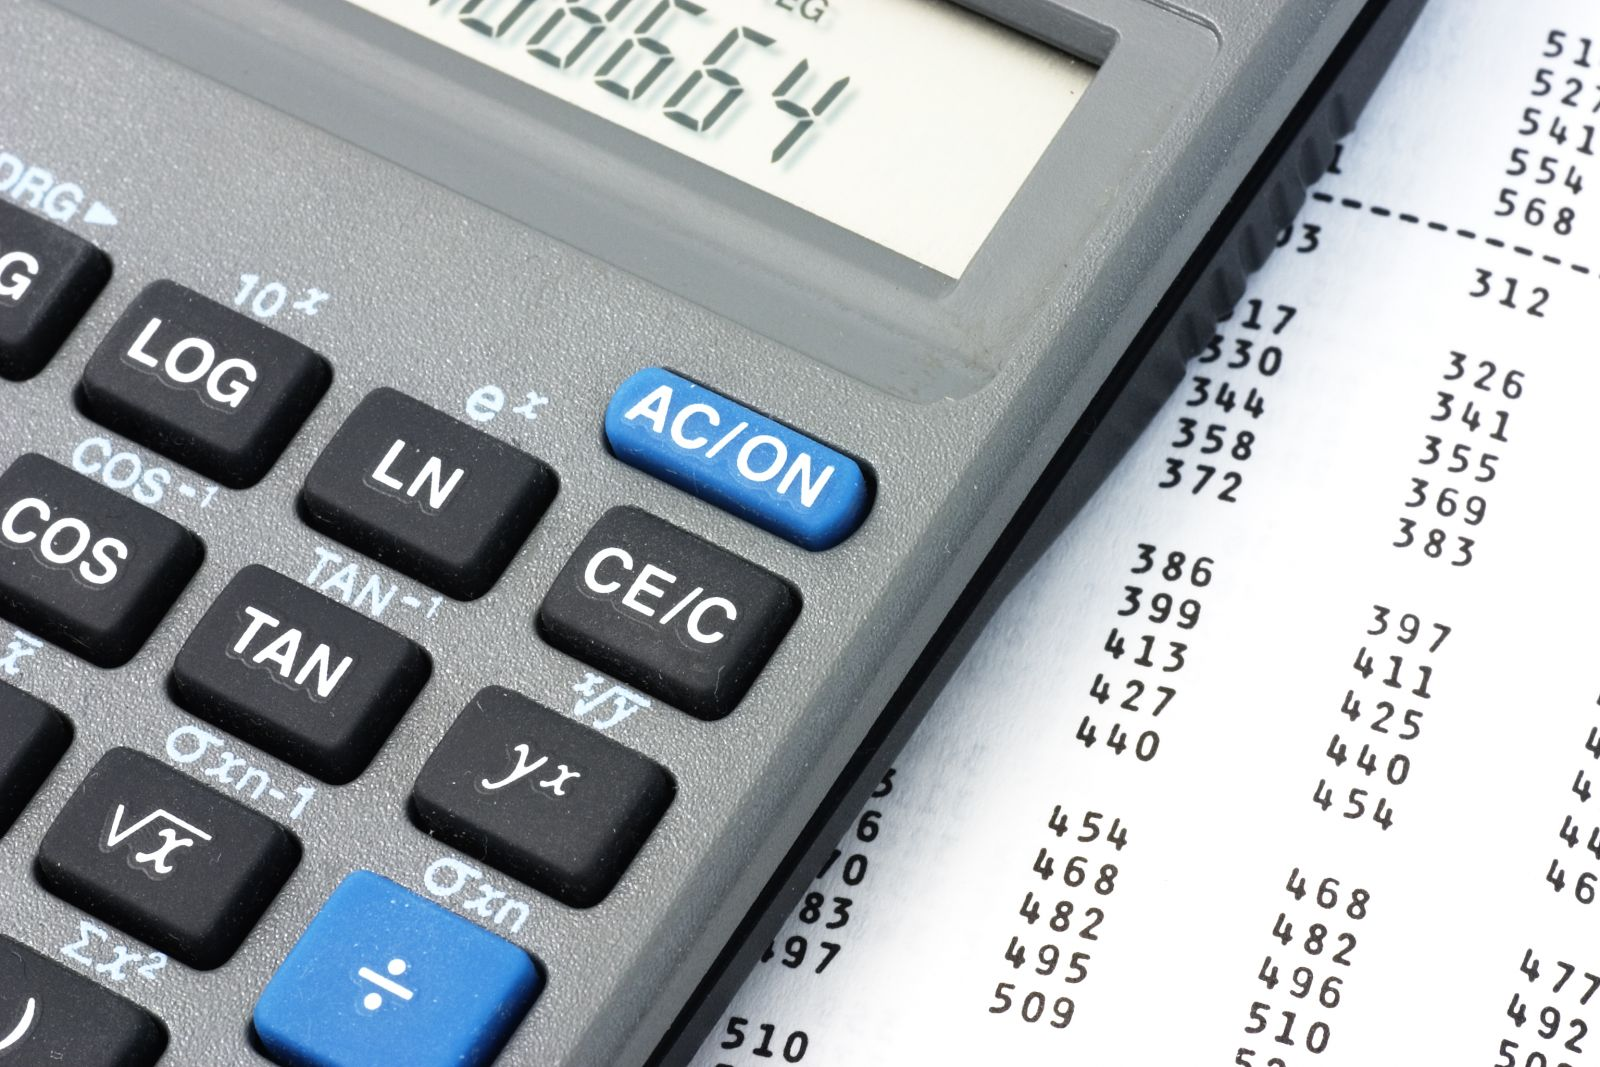 Generally Accepted Accounting Principles - GAAP